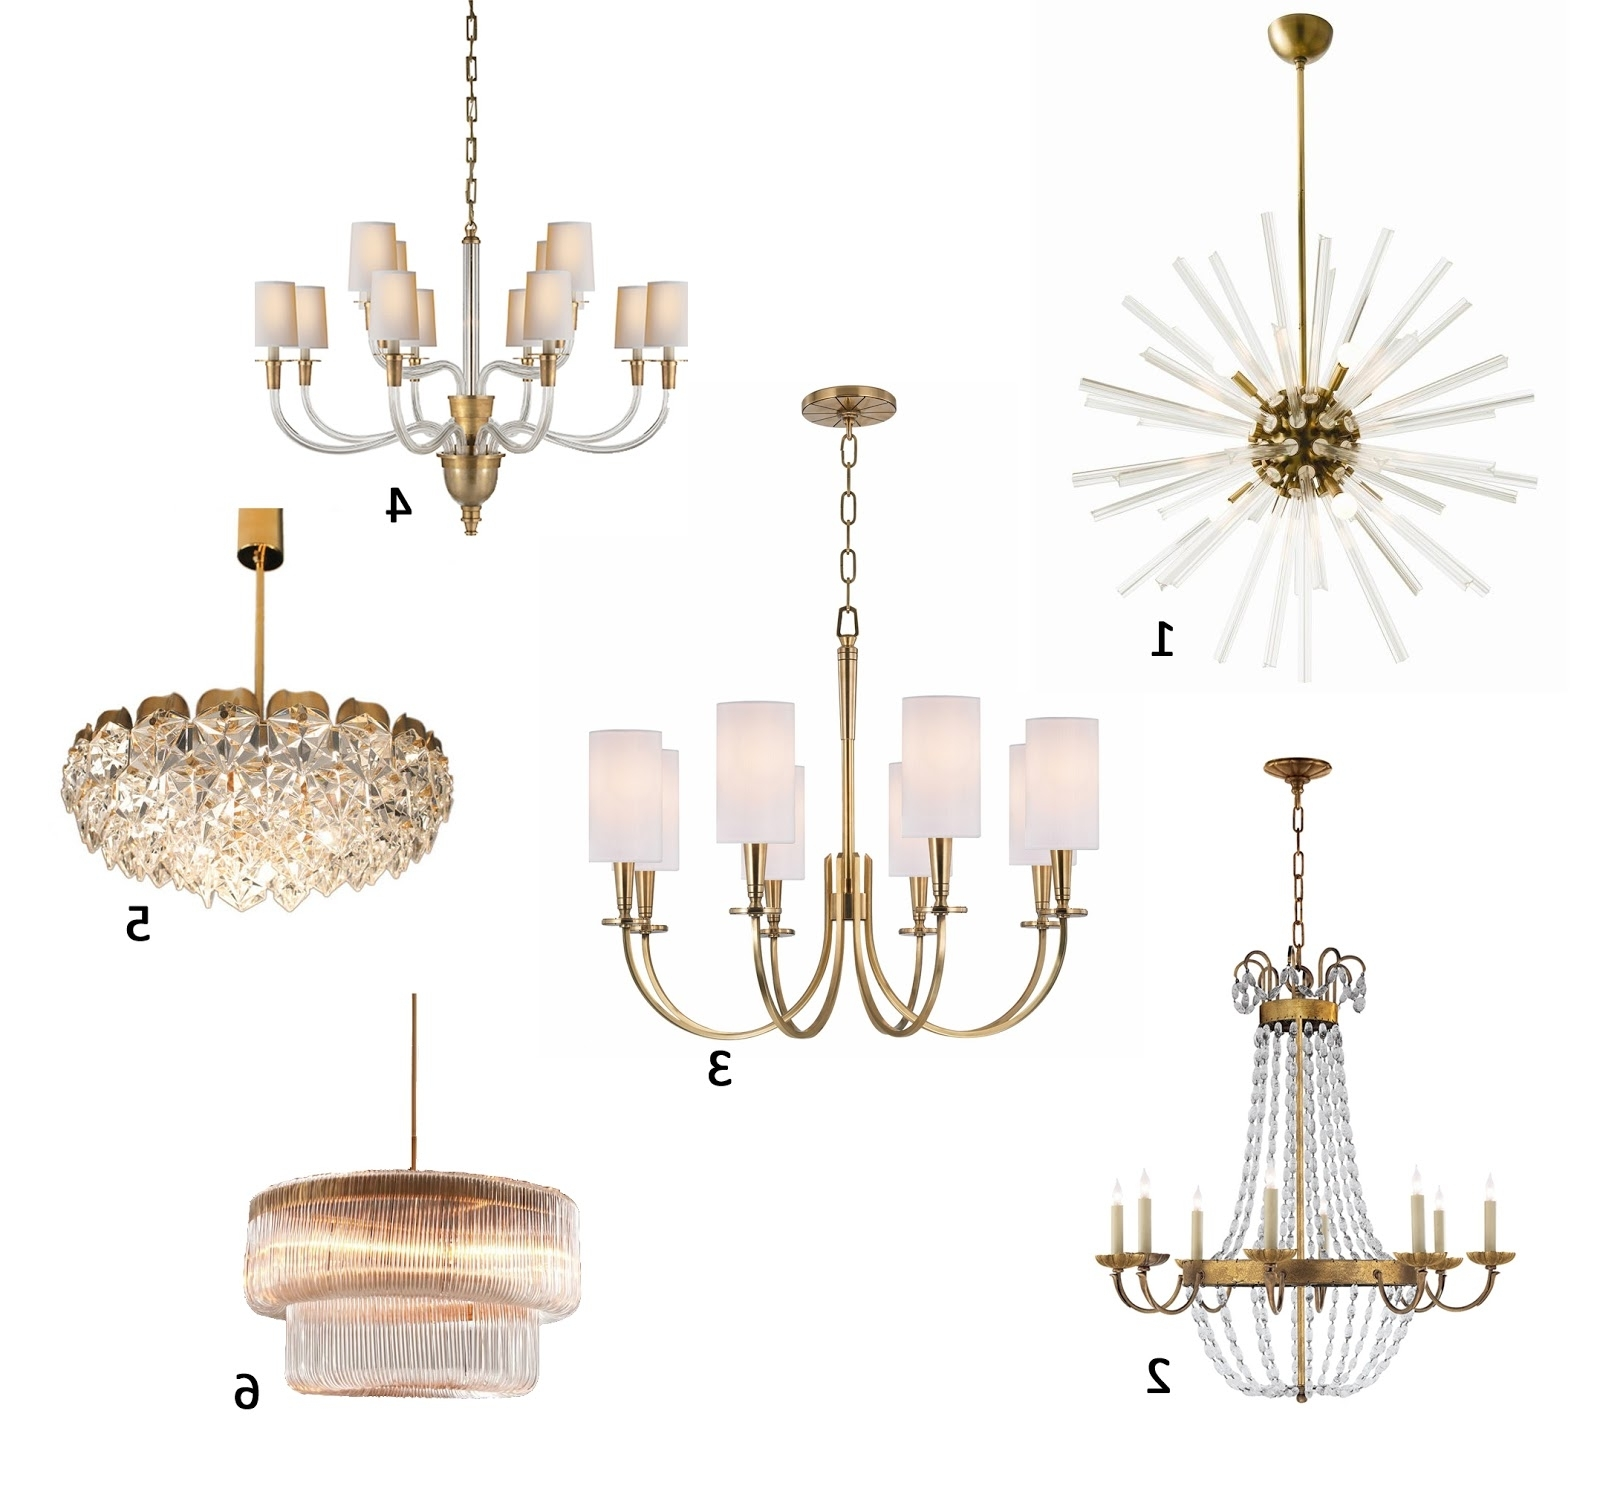 Am Dolce Vita: A Roundup Of My Favourite Brass Chandeliers Within Most Recent Traditional Brass Chandeliers (View 9 of 20)